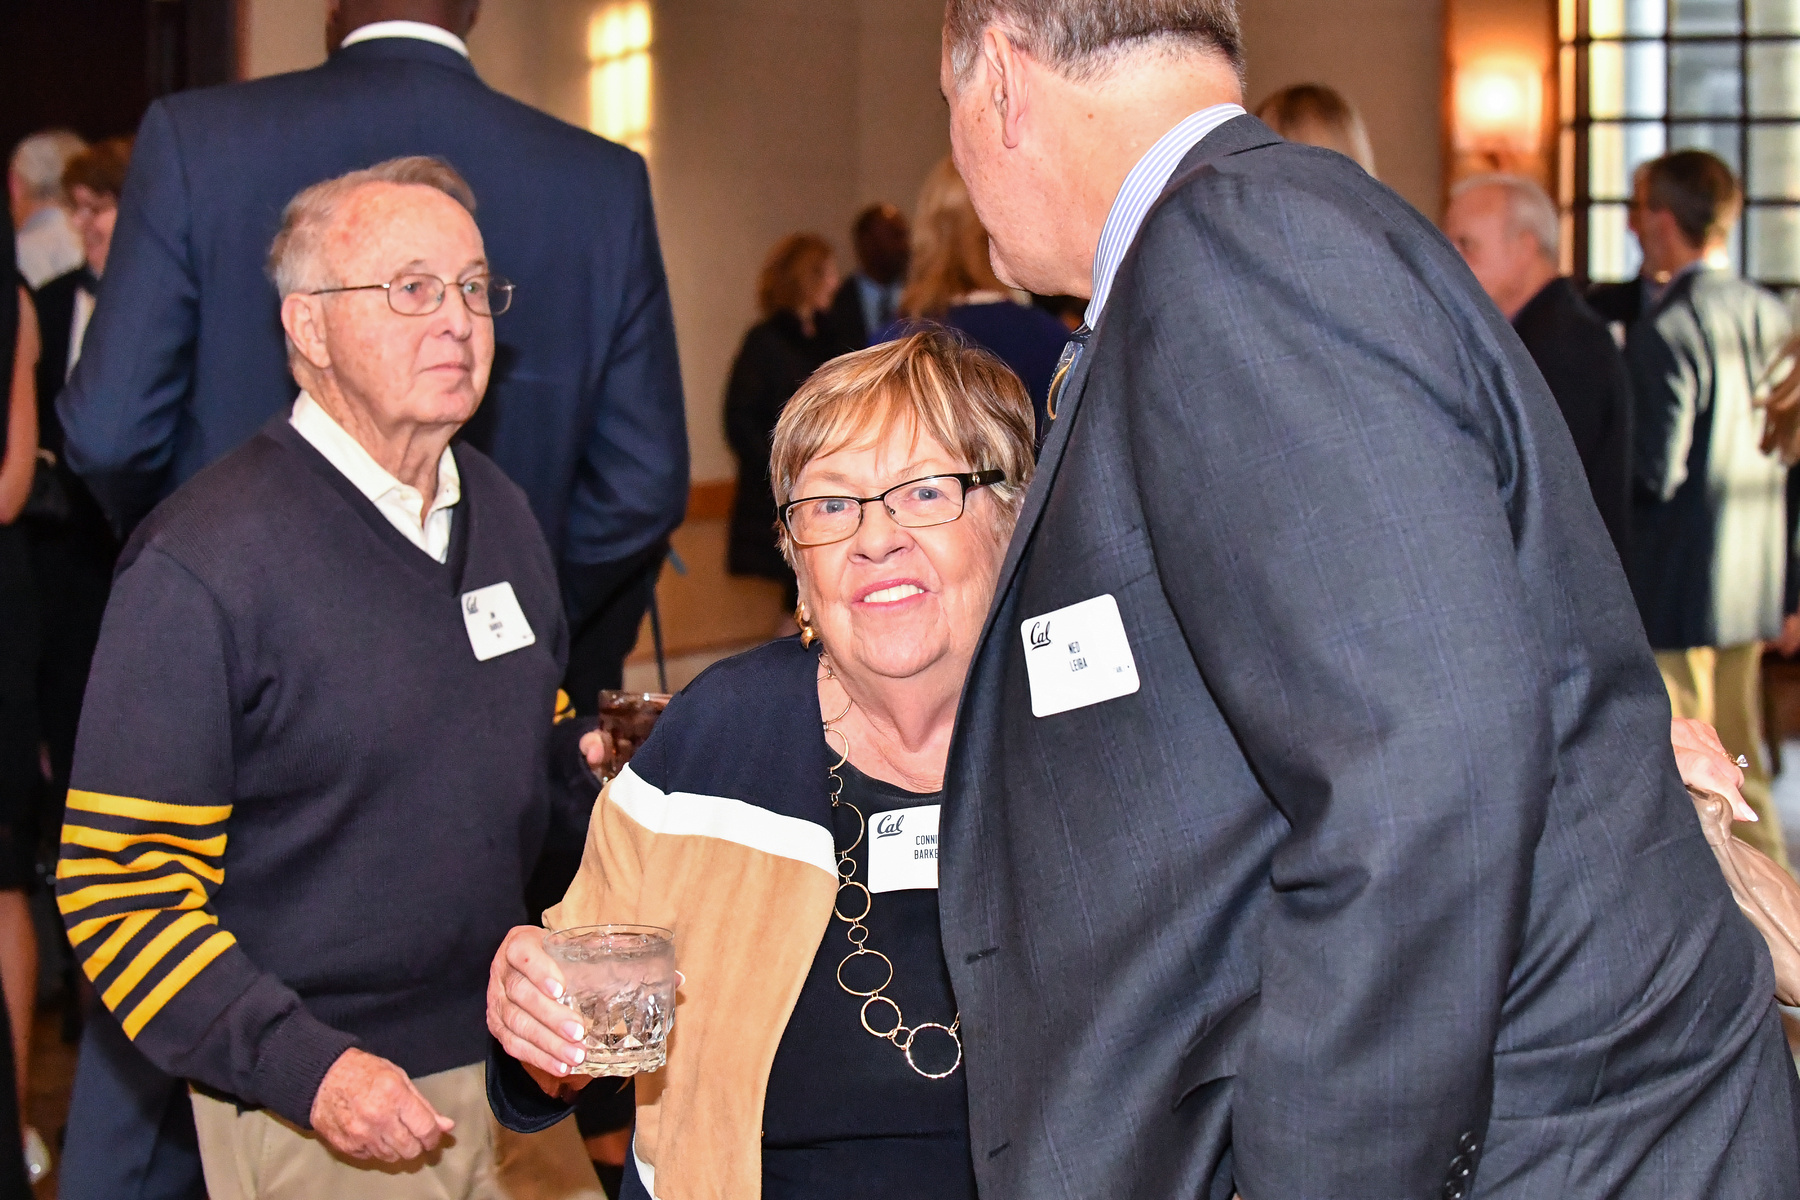 2018 Cal Hall of Fame ceremony _20181026_174226_MarcusE-(ZF-0861-35620-1-016).jpg